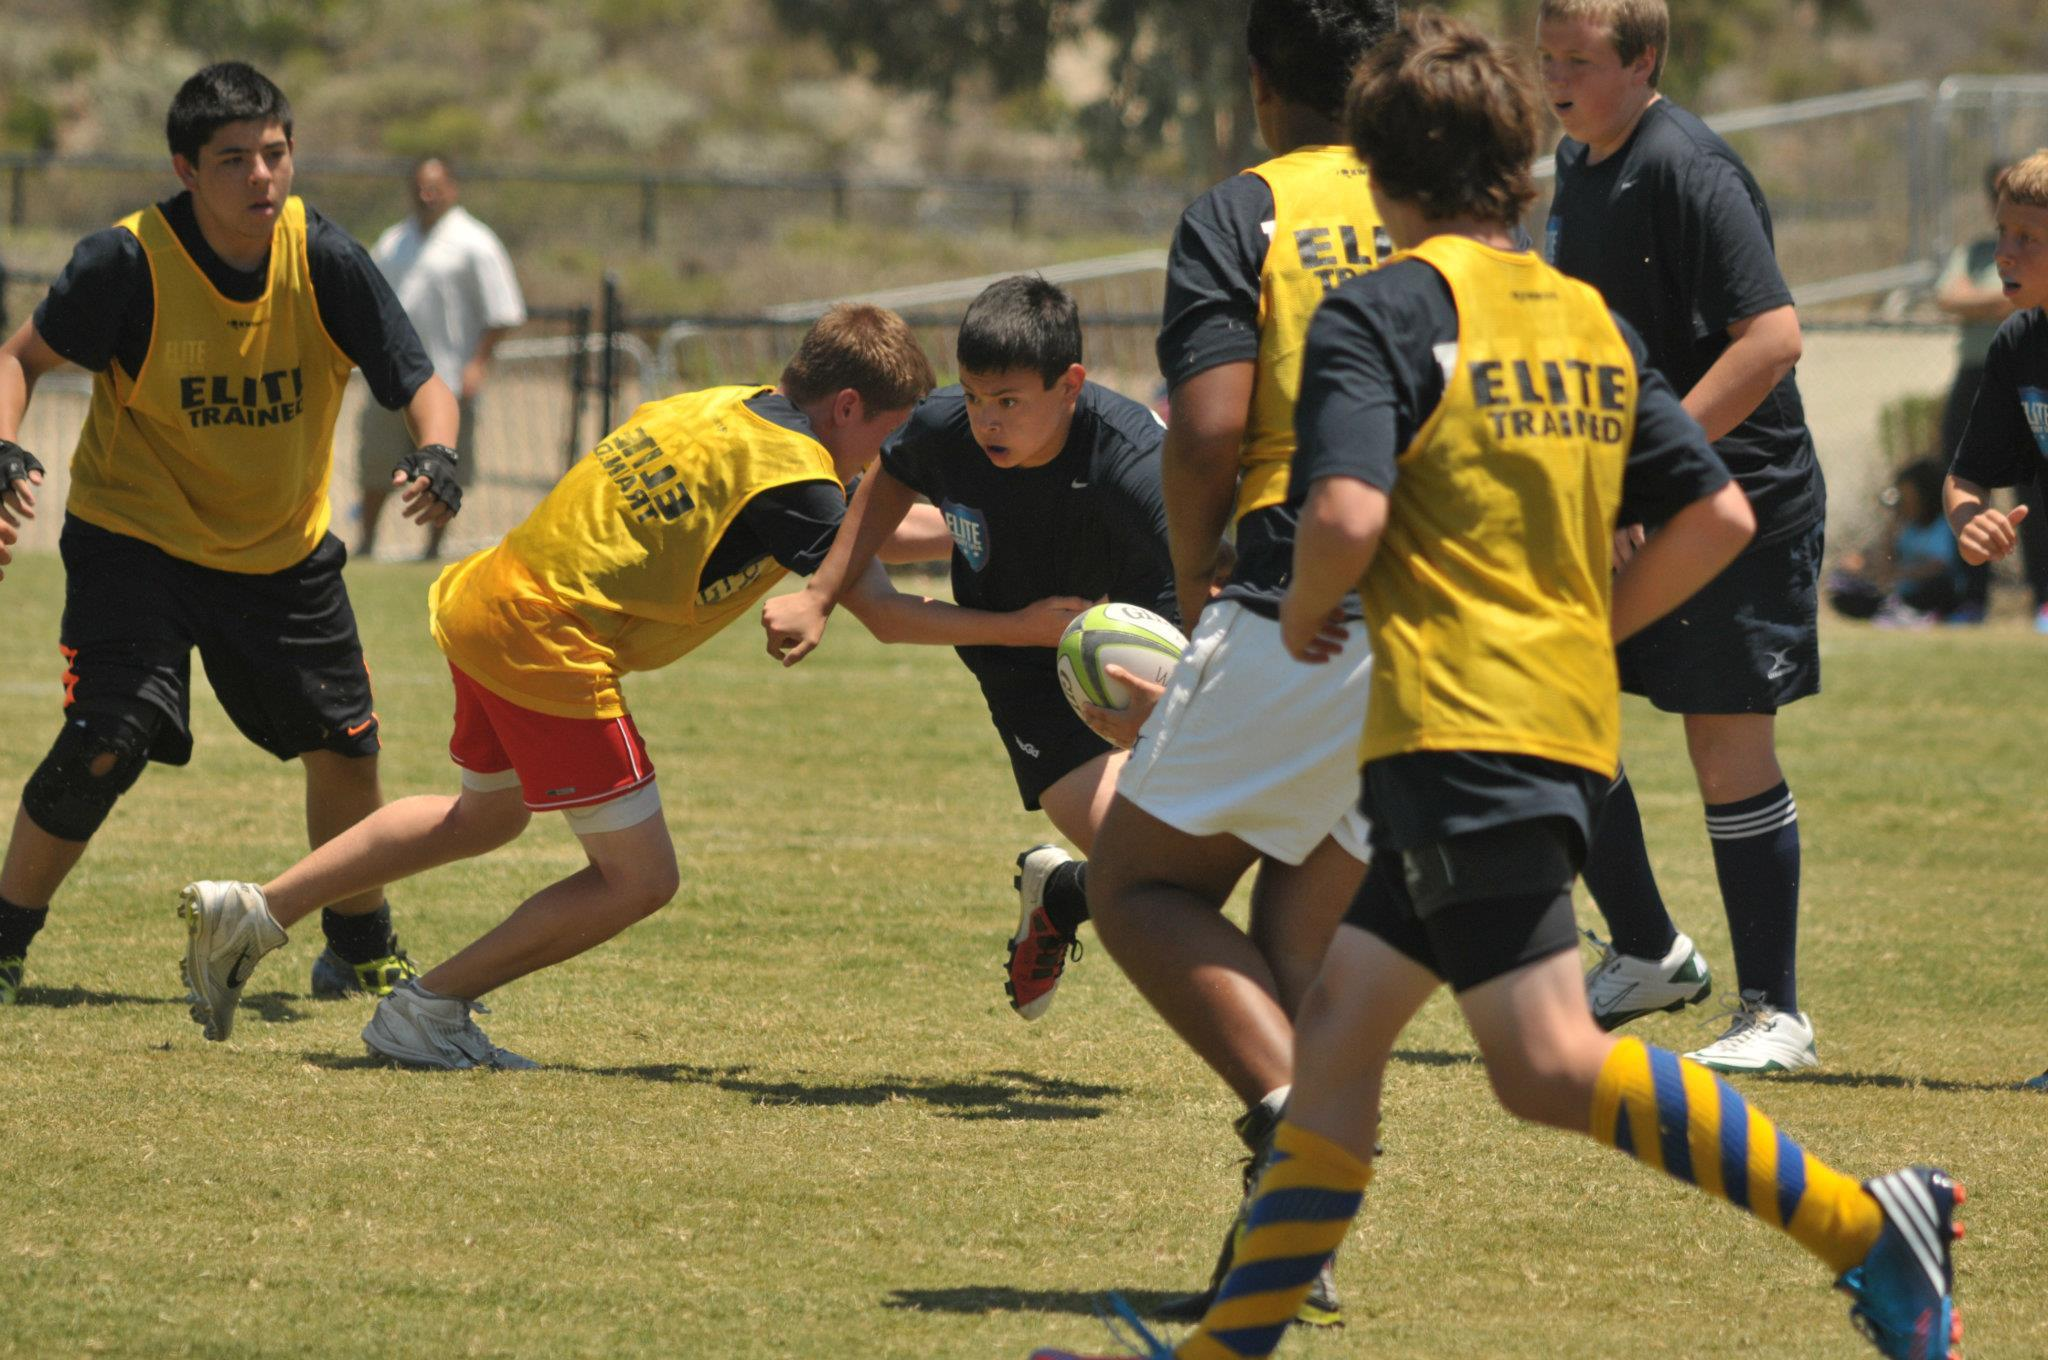 Elite Rugby Camp Photo